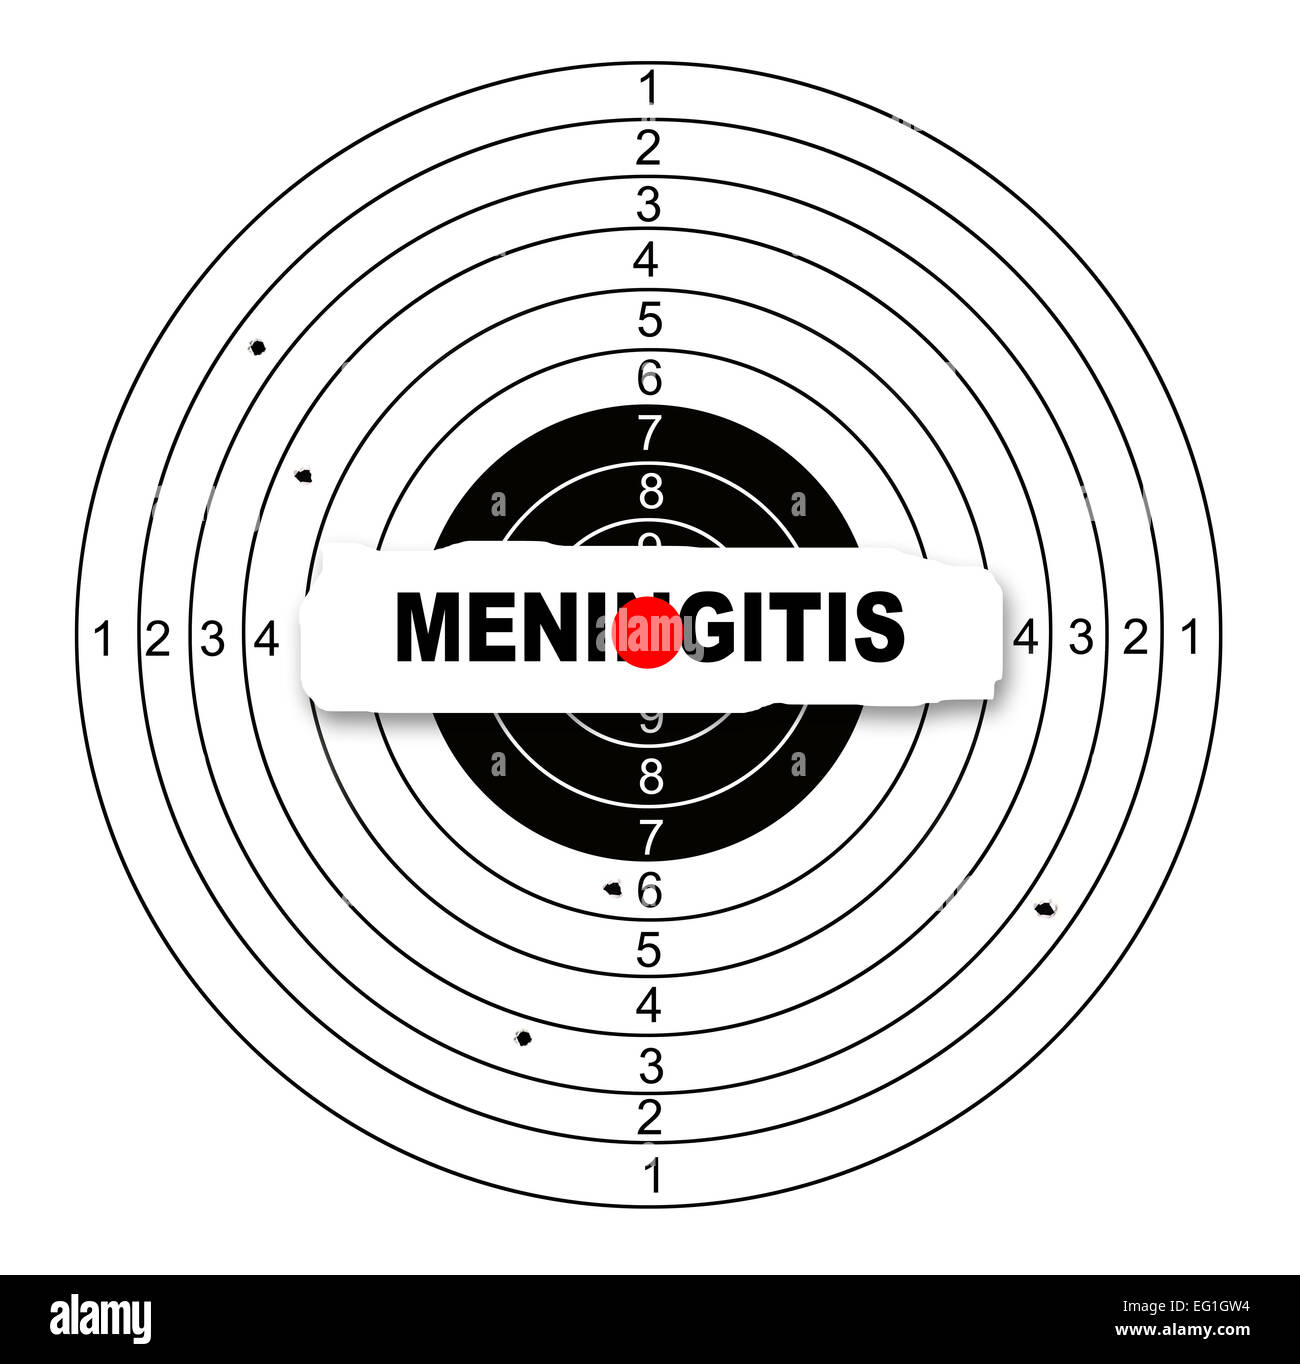 Shooting target with word meningitis made in 2d software - Stock Image